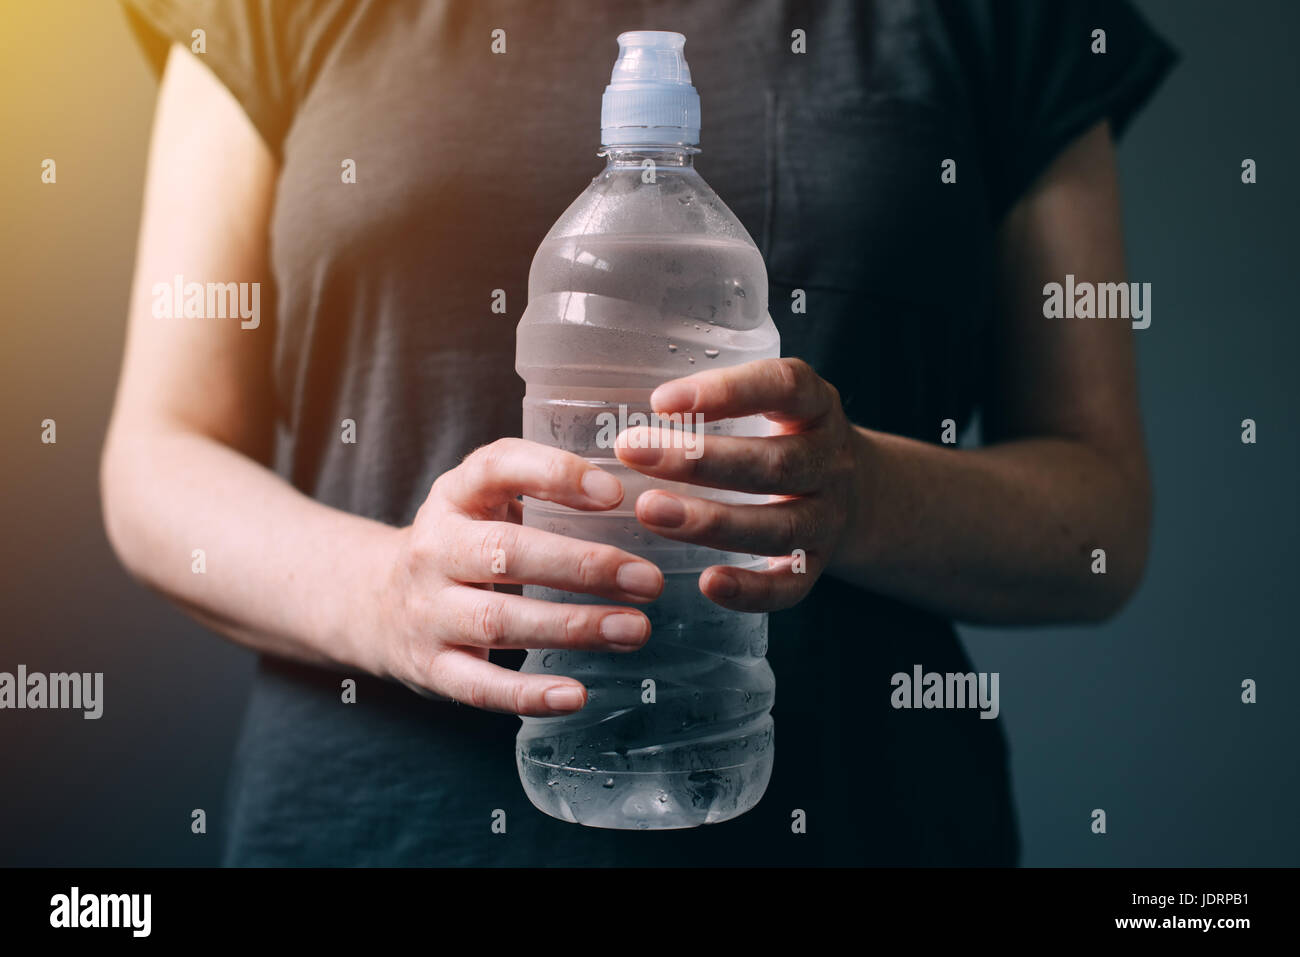 Woman with bottle of fresh drinking water for refreshment and rehydratation - Stock Image